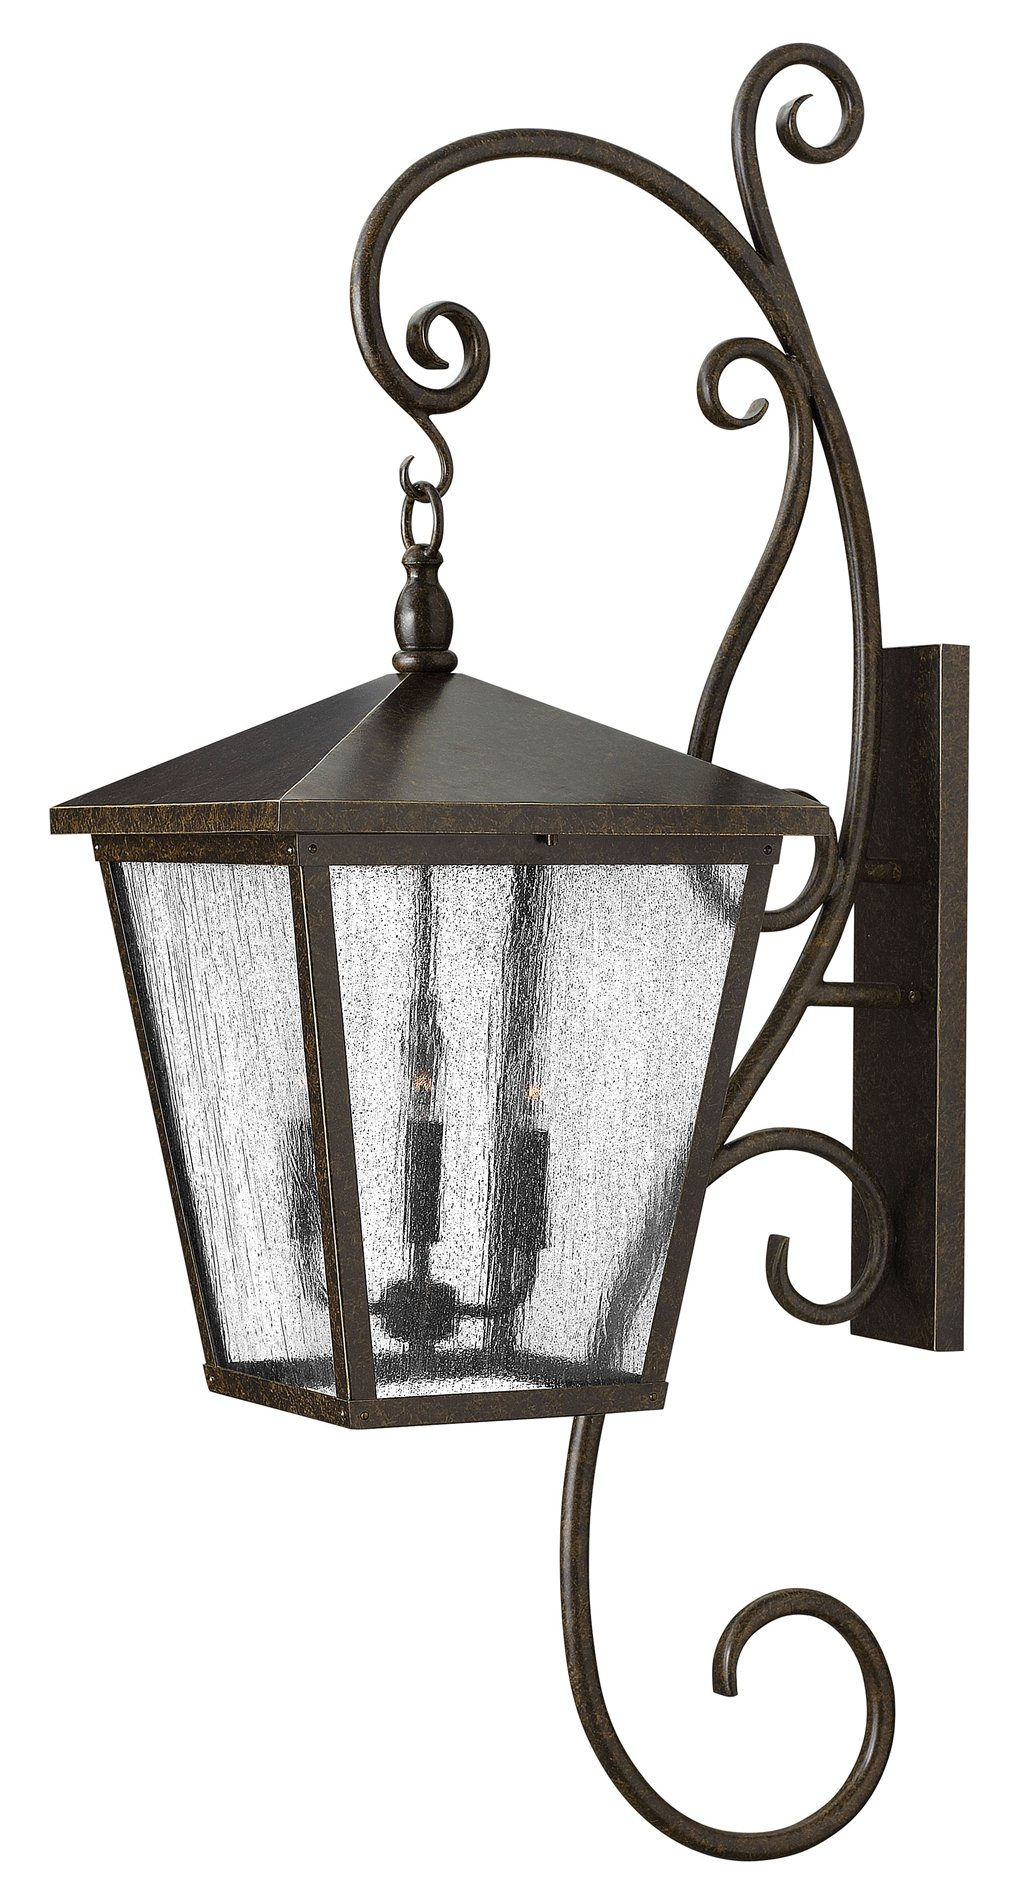 hinkley lighting 1439rb trellis traditional outdoor wall sconce extra large hk 1439rb. Black Bedroom Furniture Sets. Home Design Ideas